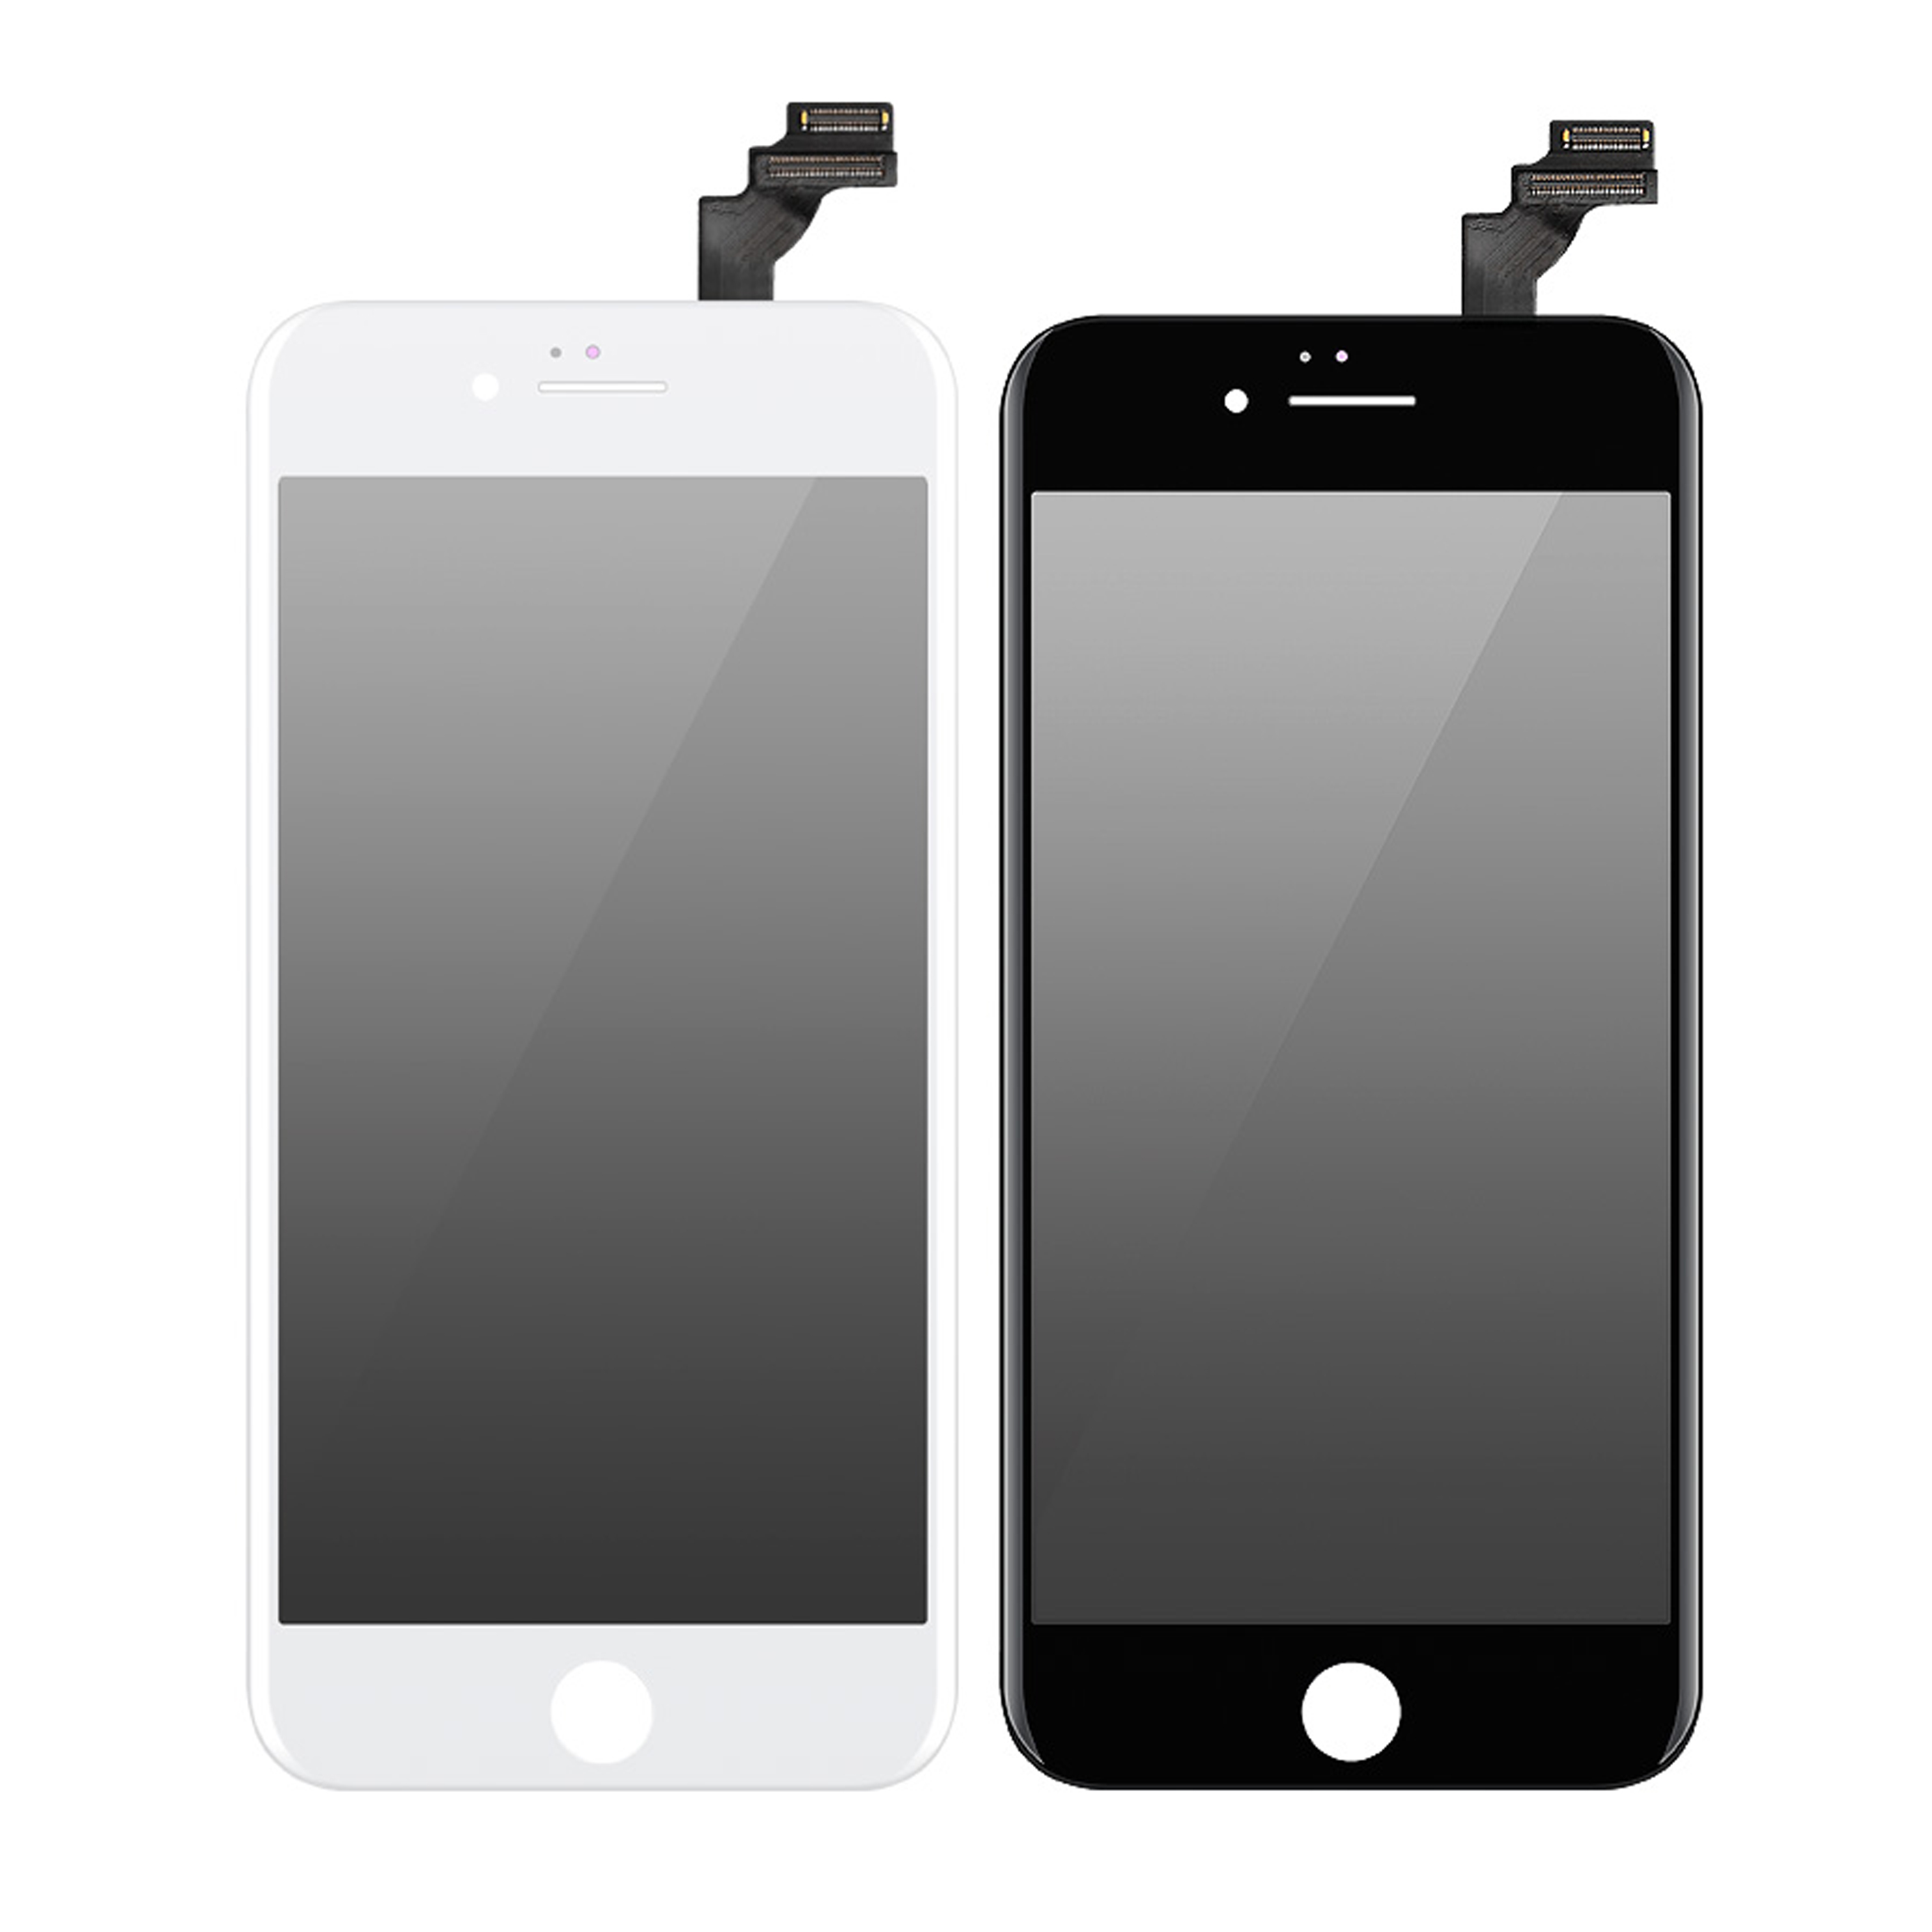 Touchscreen handy teile für iphone lcd screen original, ersatz handy screen für iphone 6 plus 6 p lcd